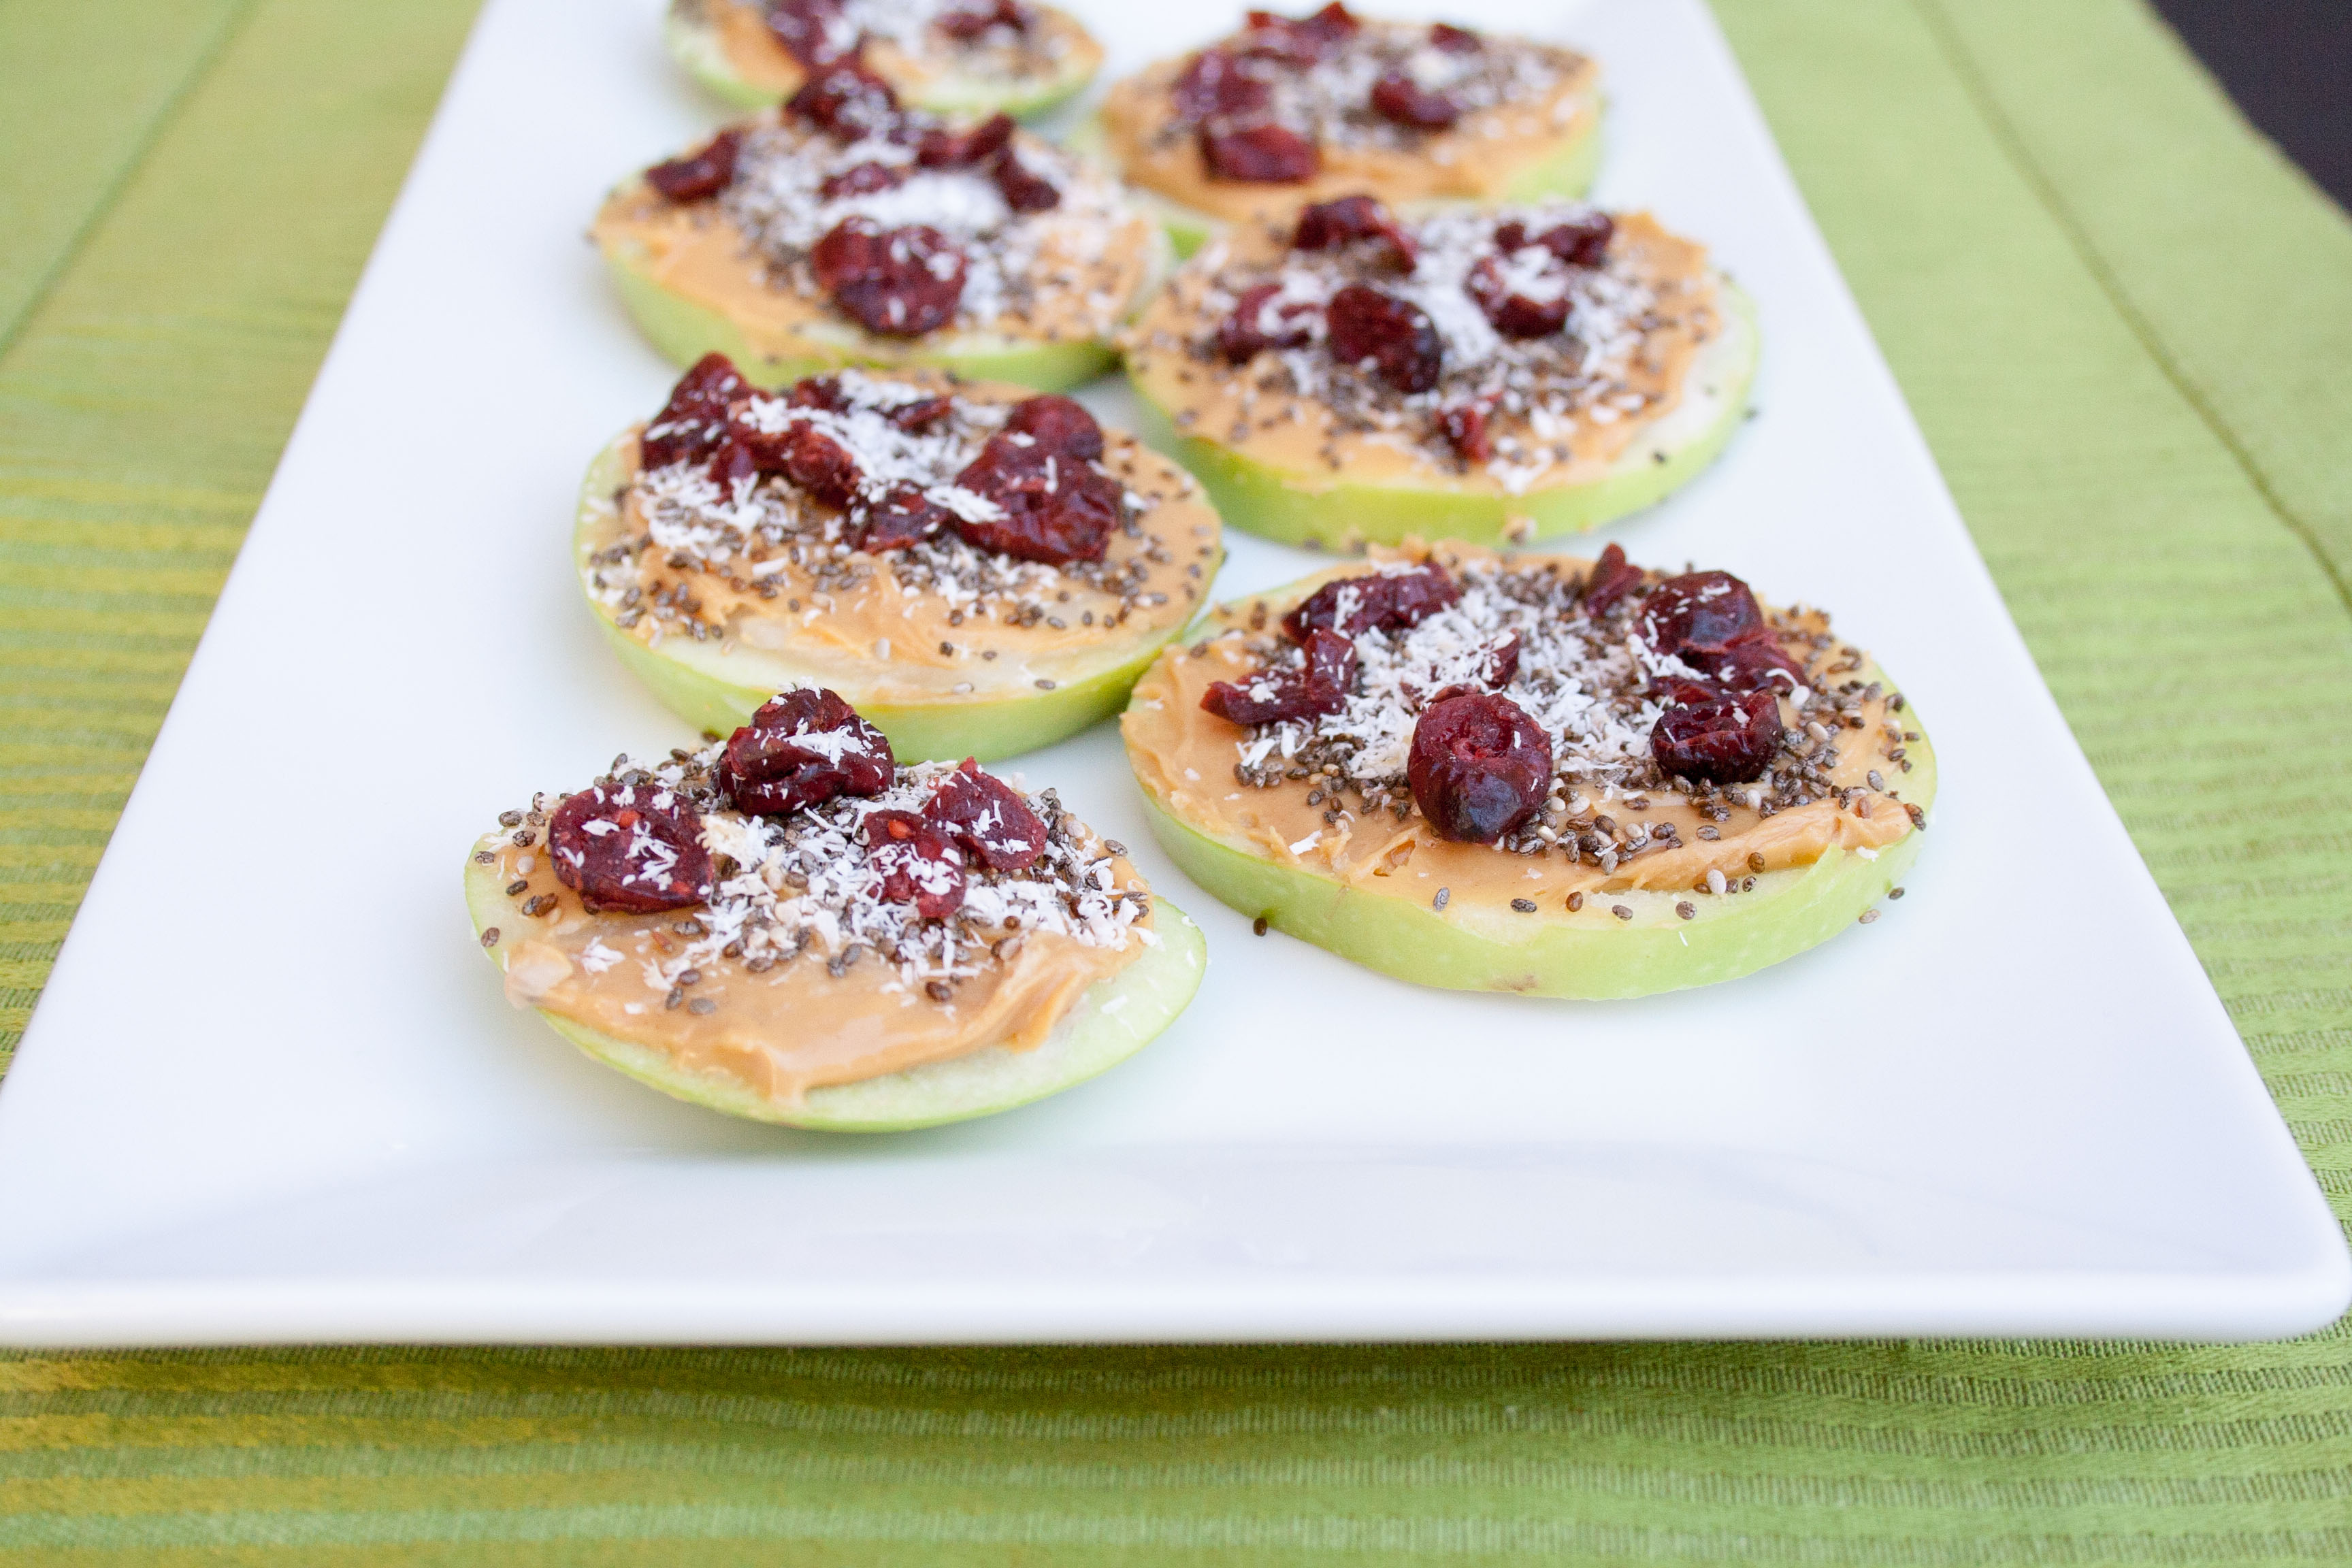 Coconut Peanut Butter Apple Pizzas on plate.